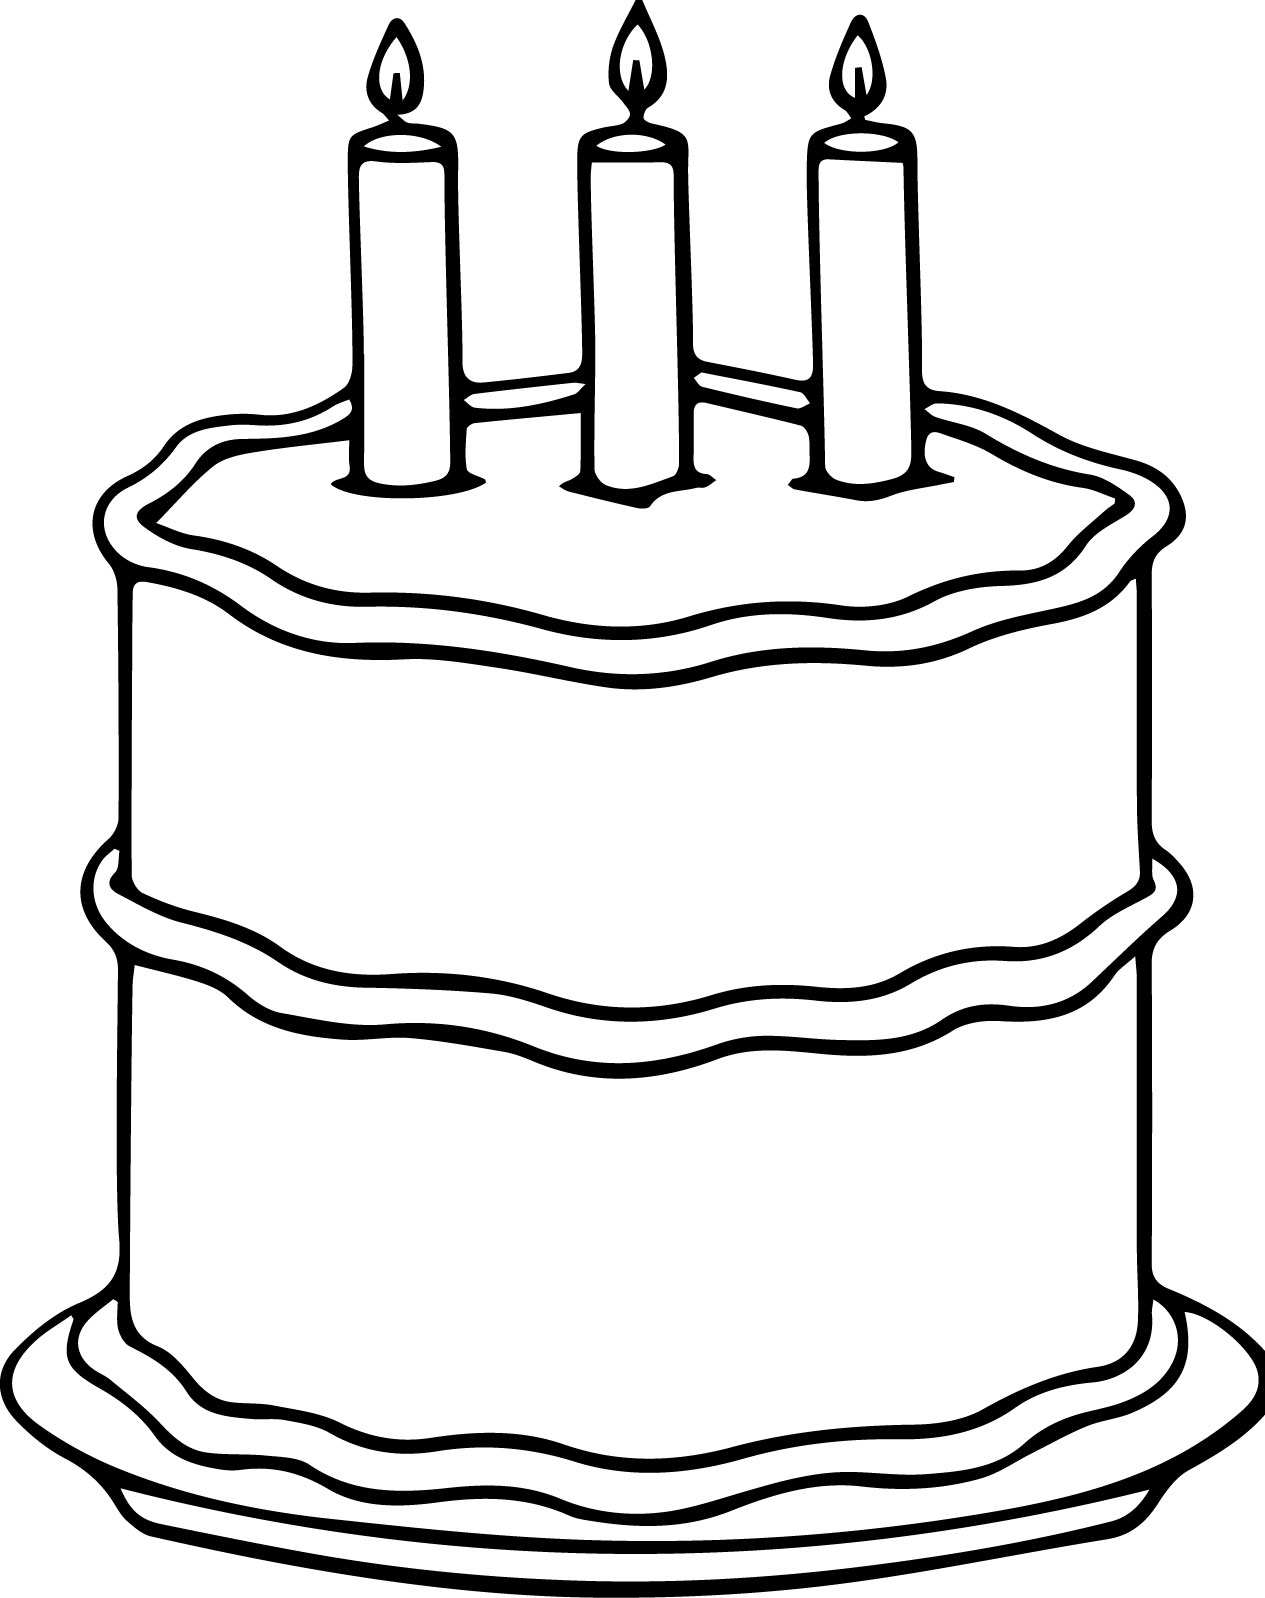 Middle Birthday Cake Coloring Page | Wecoloringpage.com